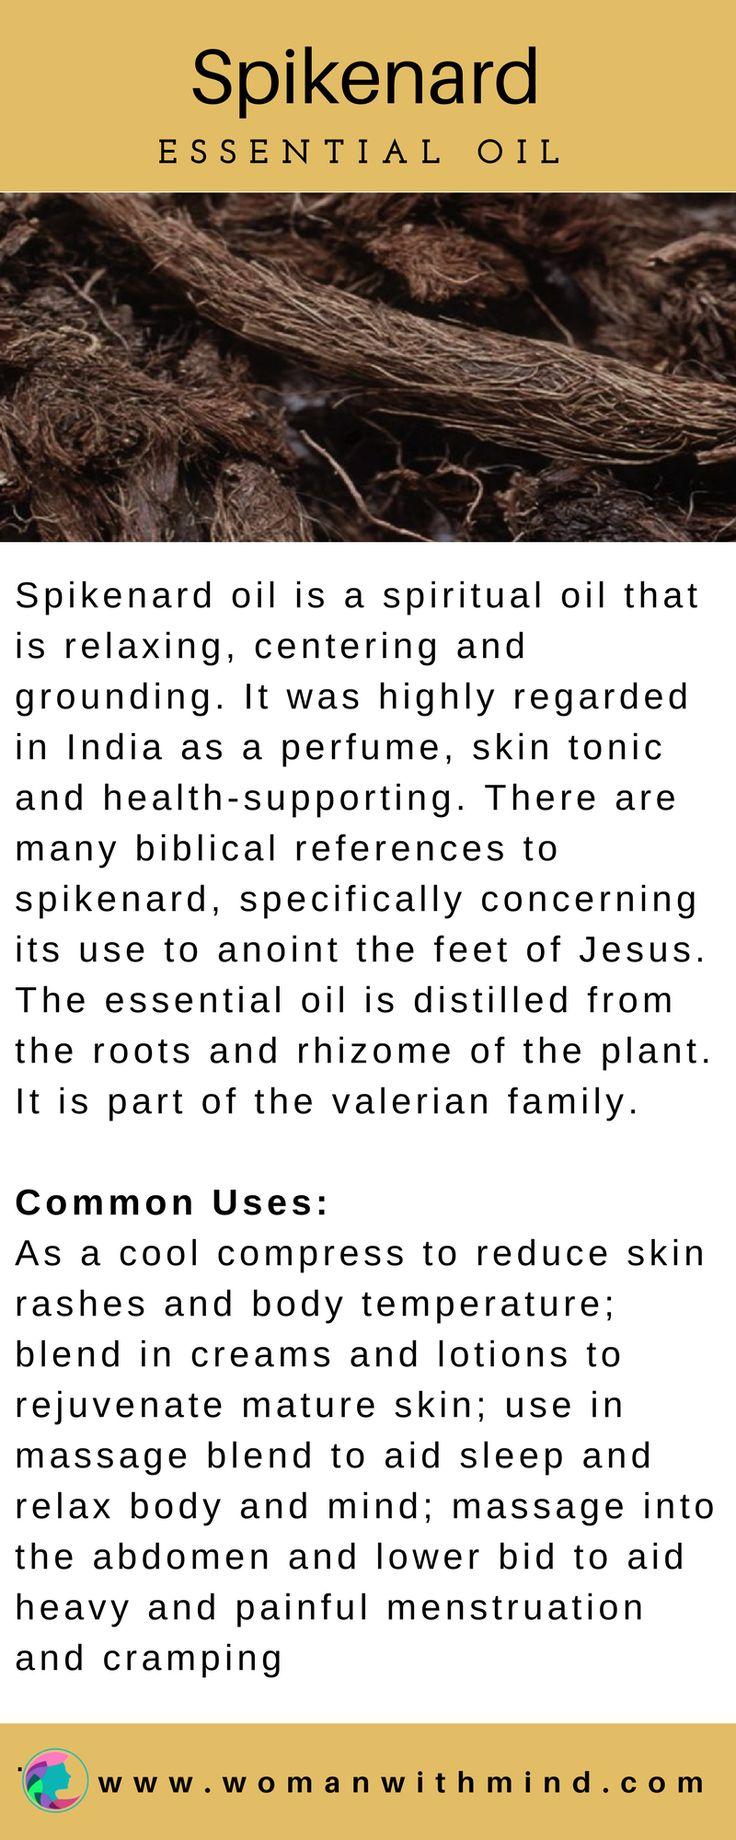 Spikenard Essential Oil Guide & Application #essentialoils